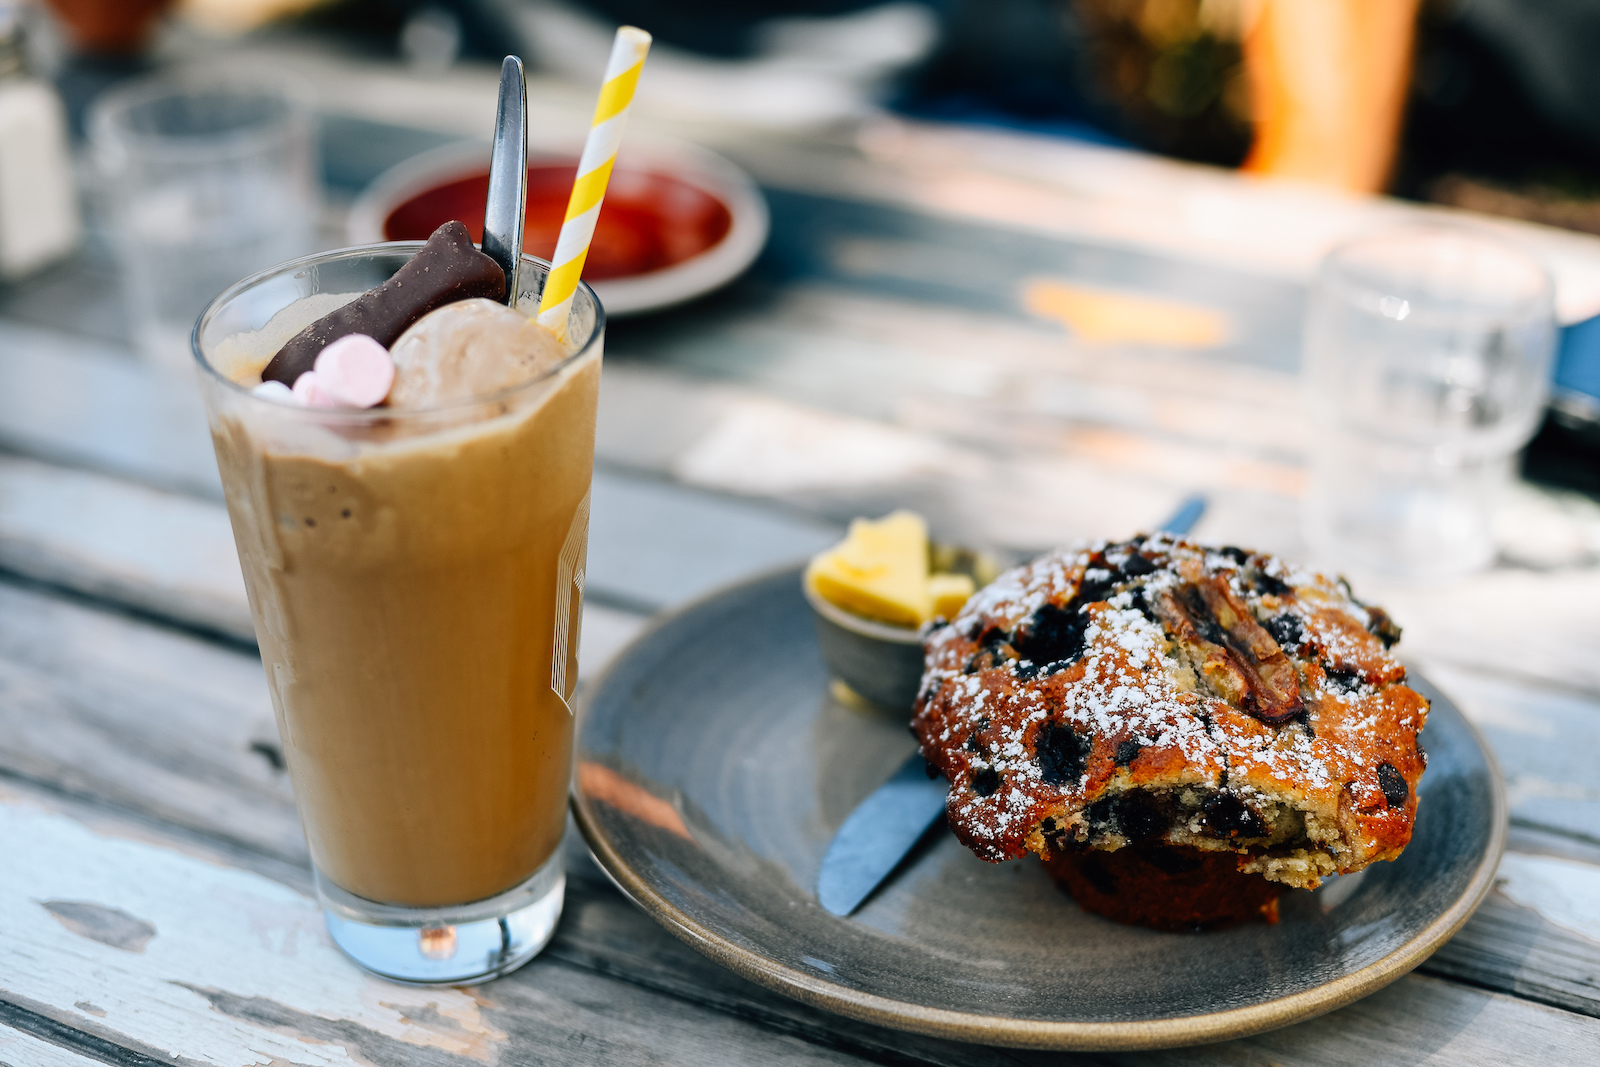 As for the rest of us Iced Coffee over ice cream with a mega muffin. The body is a temple.